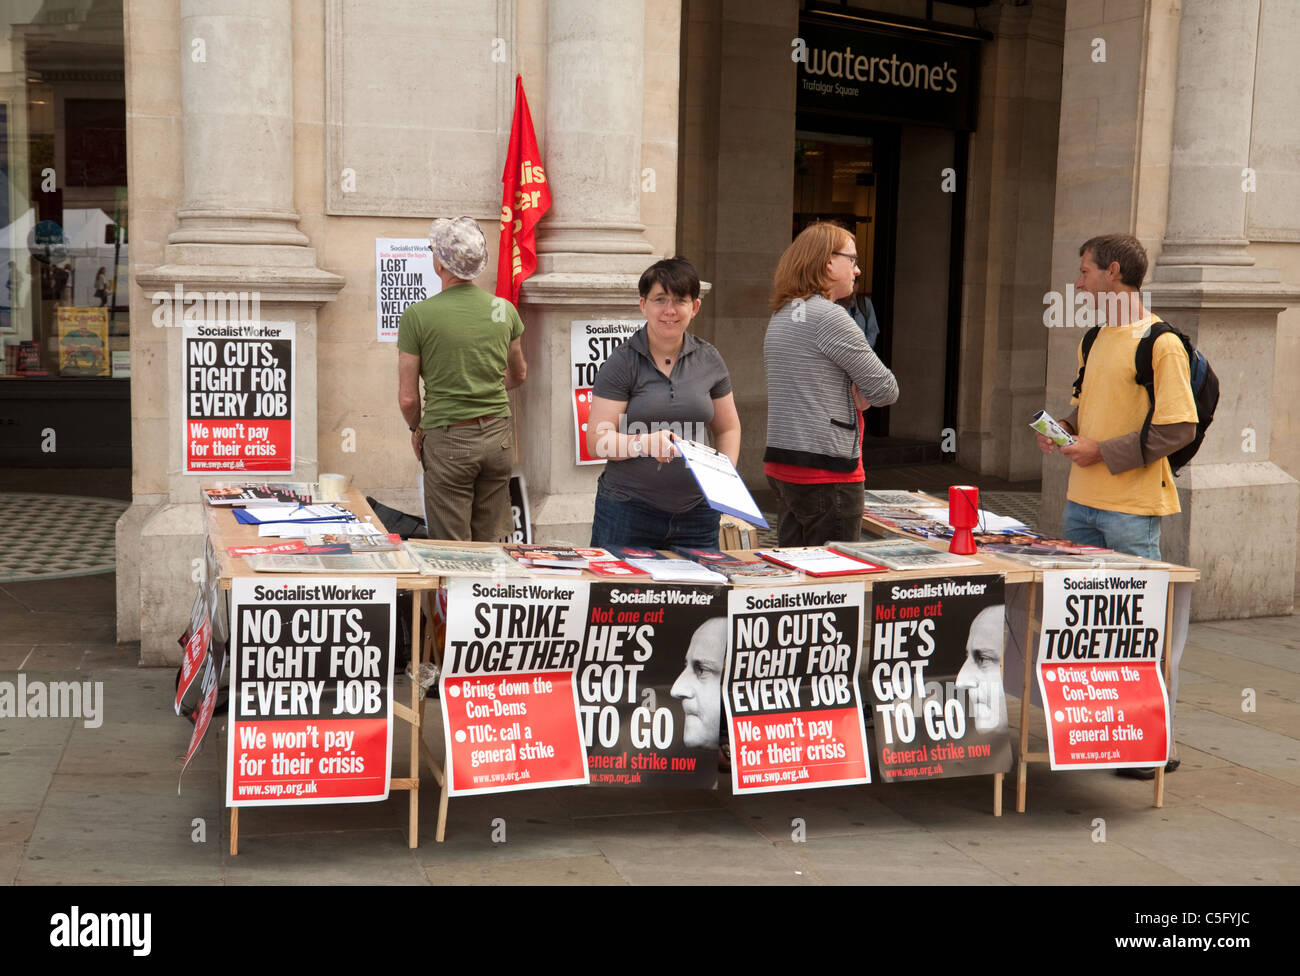 Socialist Worker Newspaper stall, Trafalgar square London UK - Stock Image